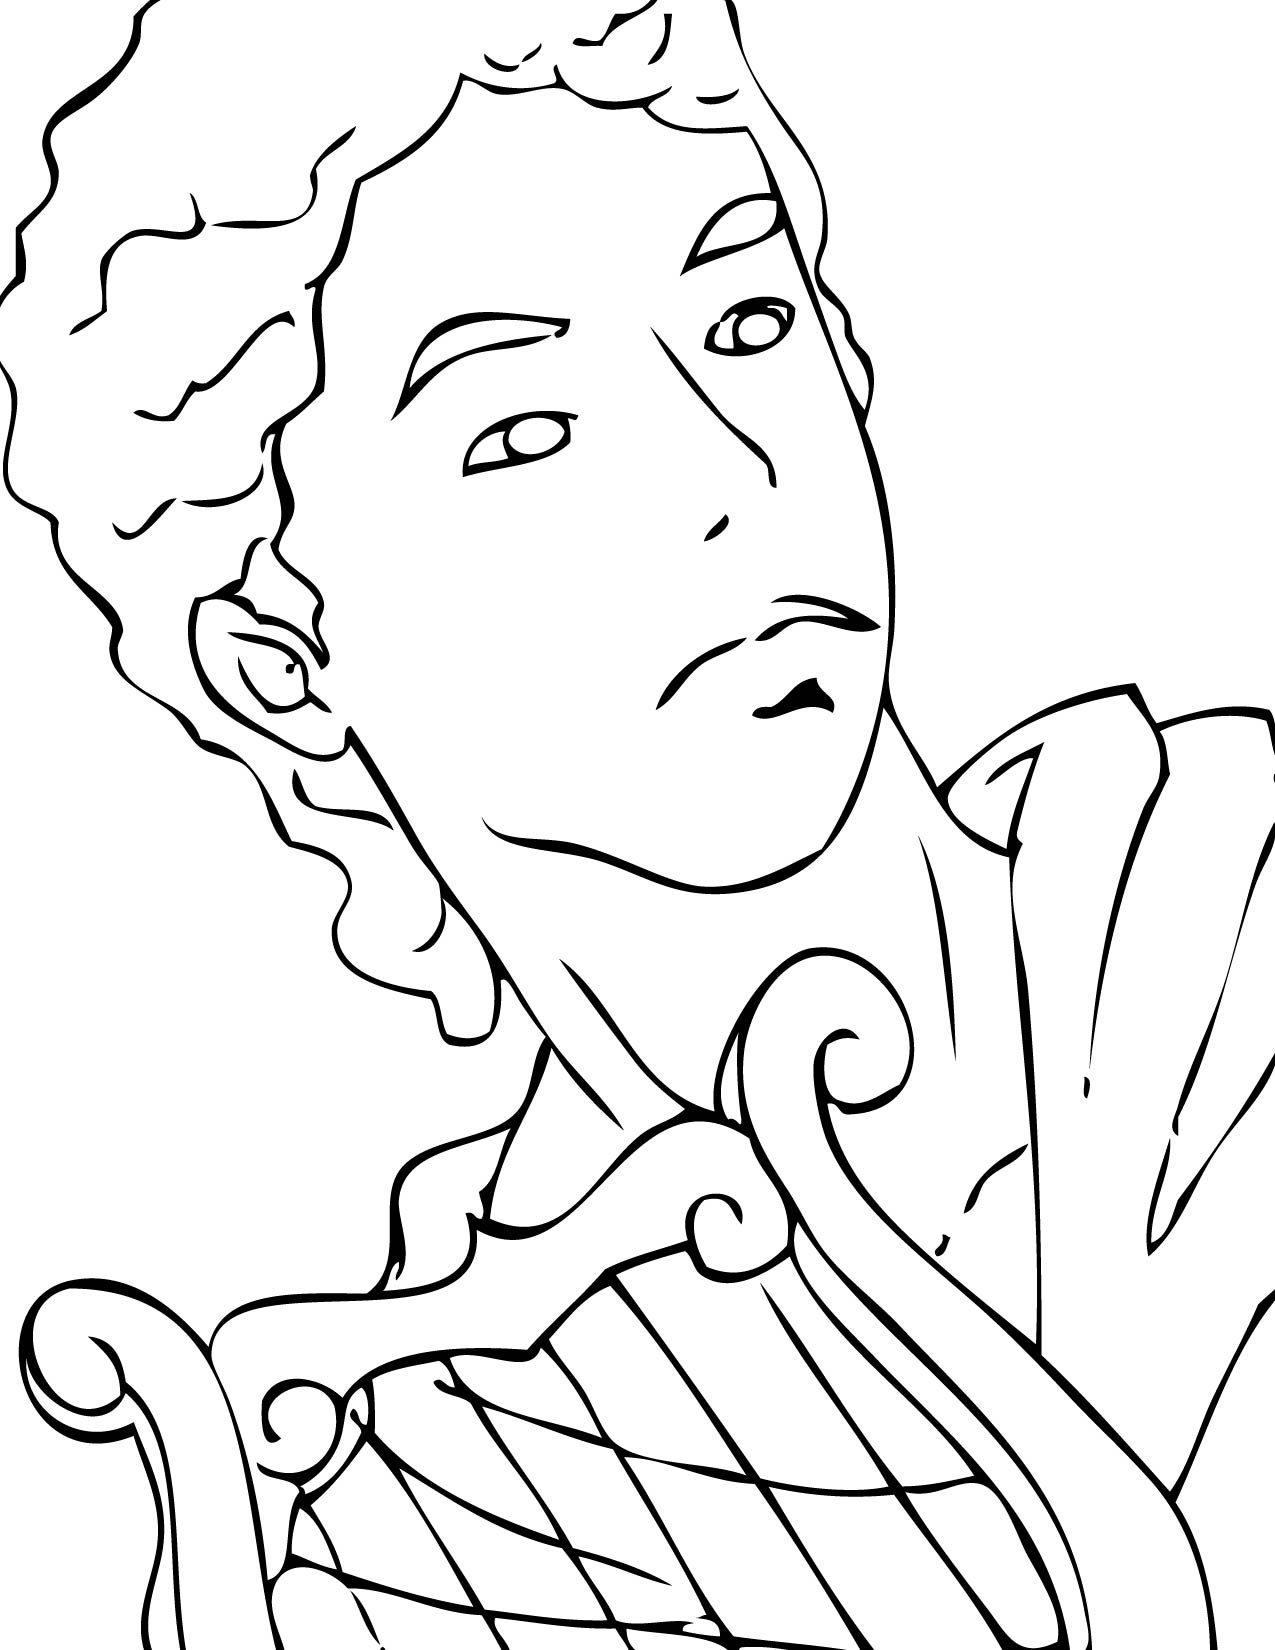 Apollo Coloring Page Handipoints